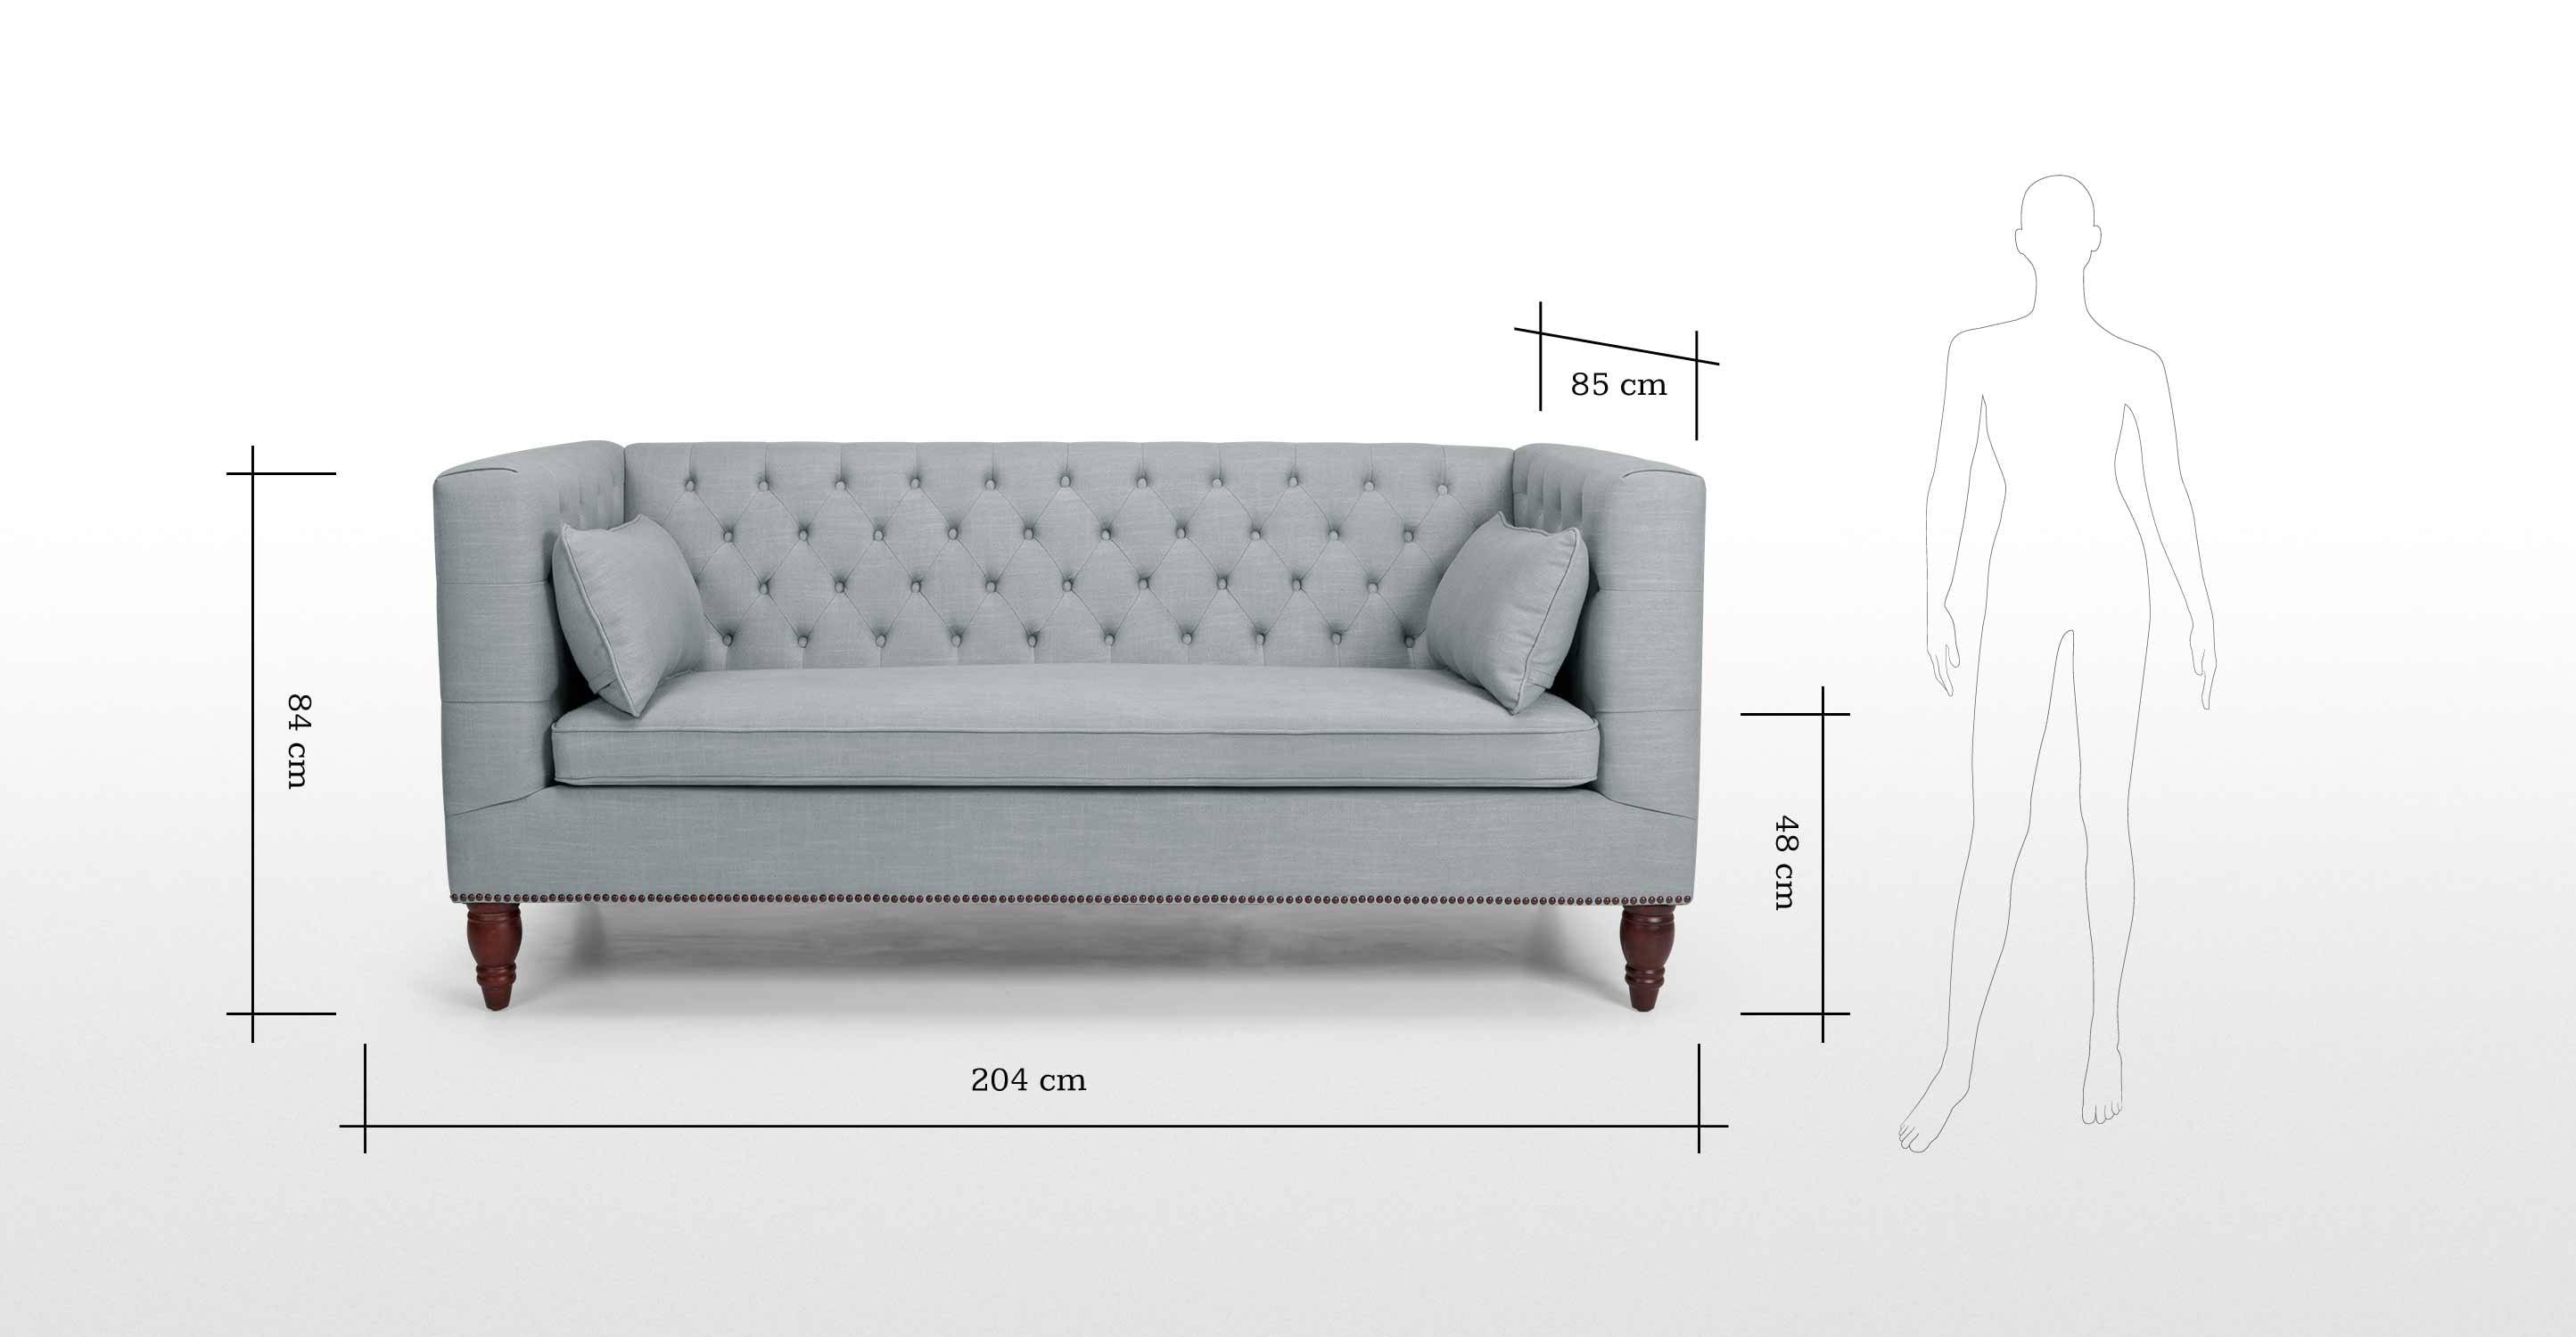 Flynn 3 Seater Sofa In Persian Grey | Made intended for Three Seater Sofas (Image 18 of 30)